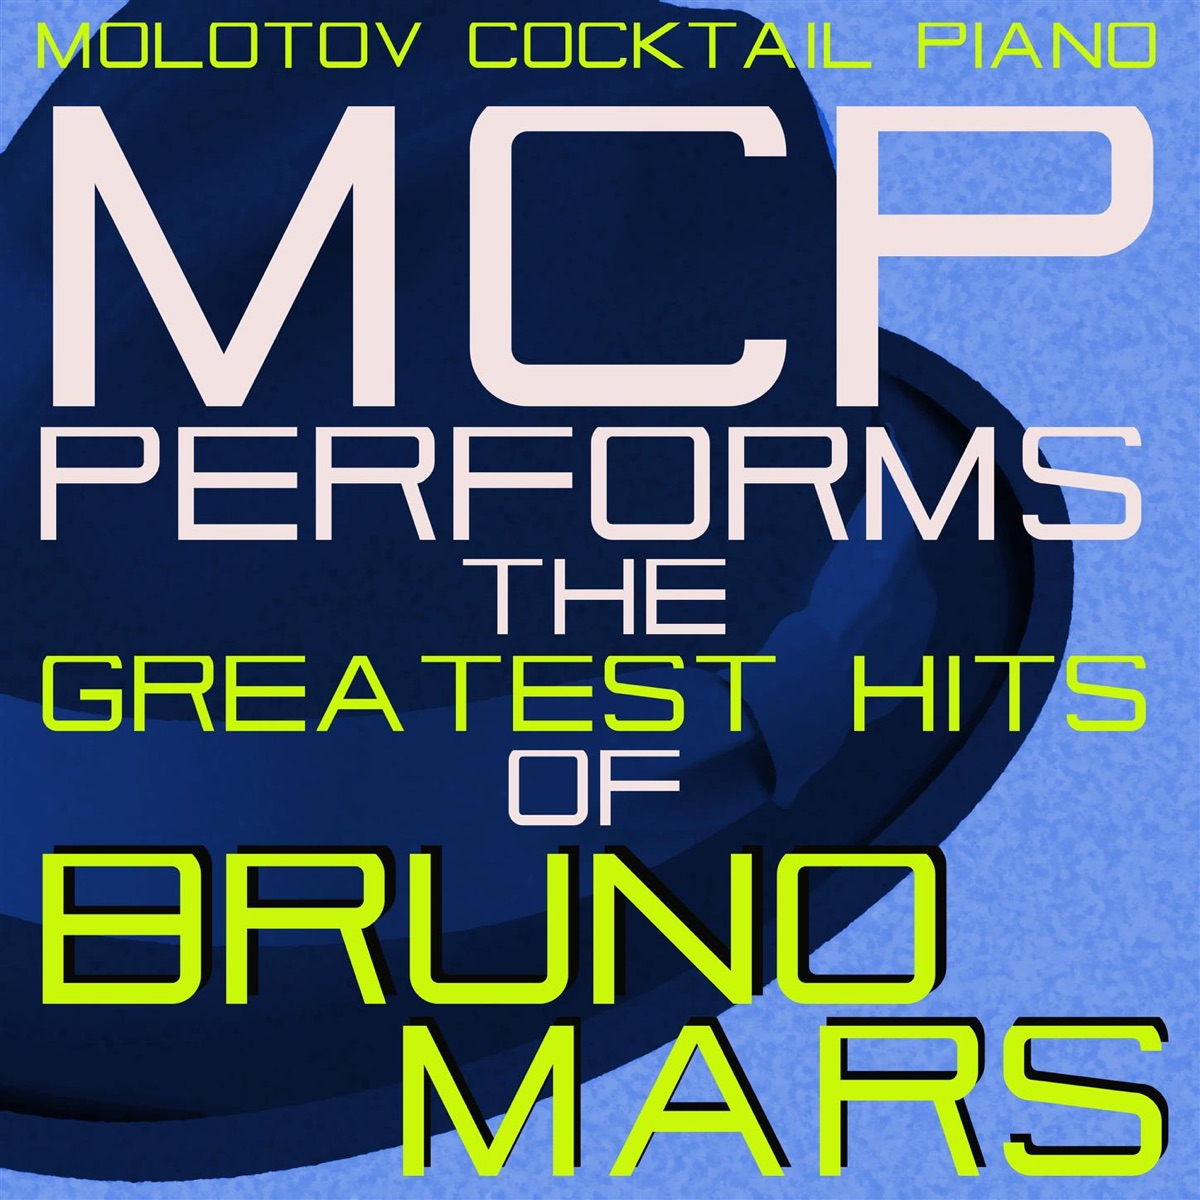 MCP Performs the Greatest Hits of Bruno Mars Molotov Cocktail Piano CD cover